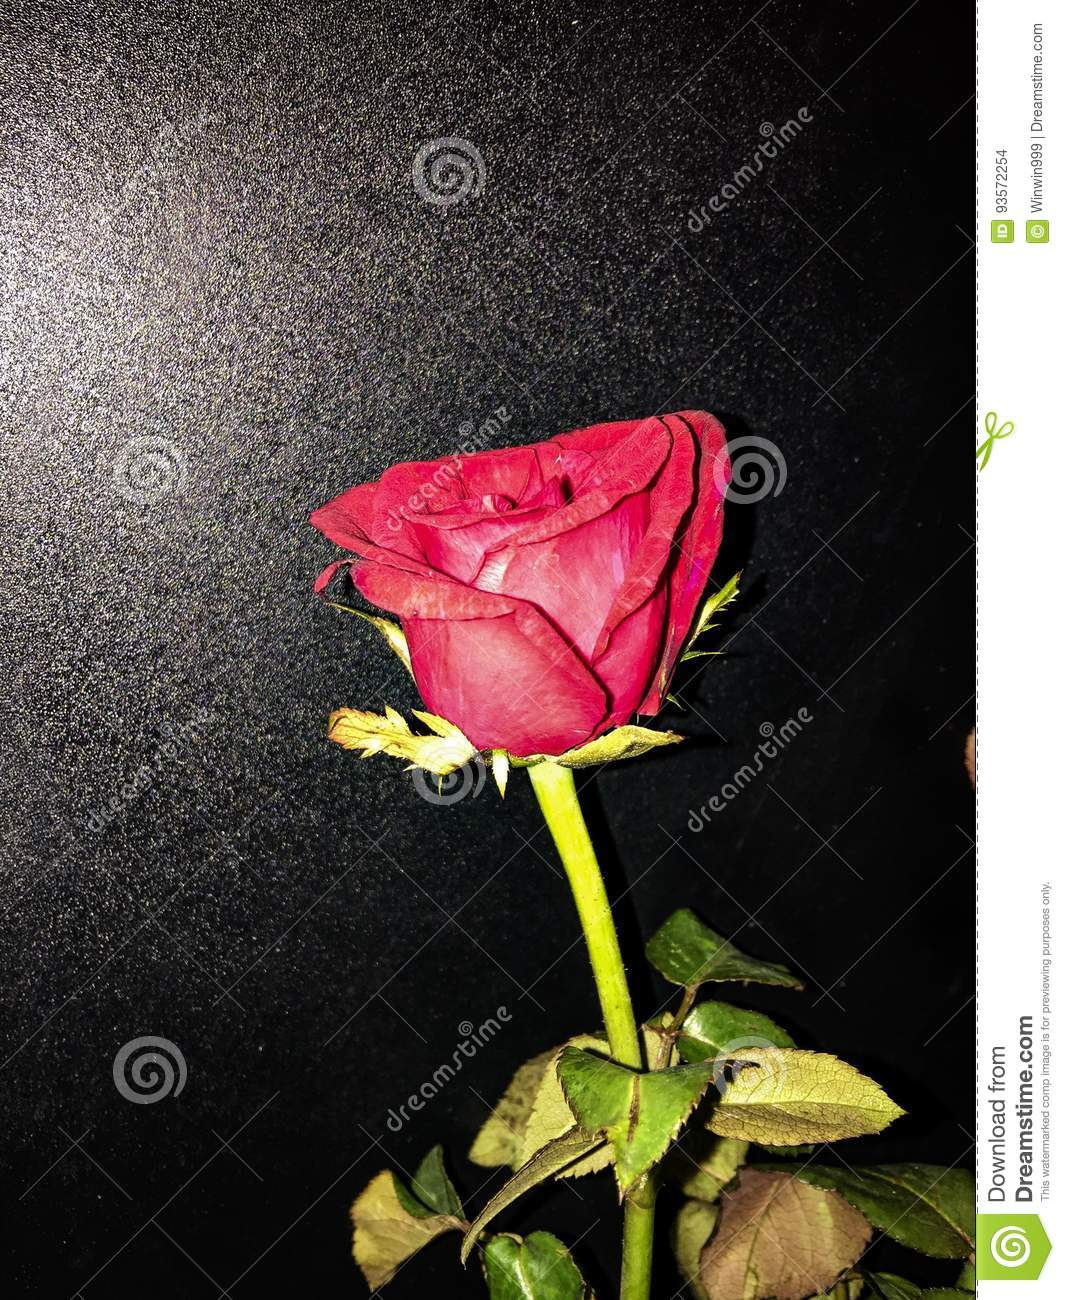 Belle Fleur De Rose D Angle Naturelle Pour L Amour Photo Stock